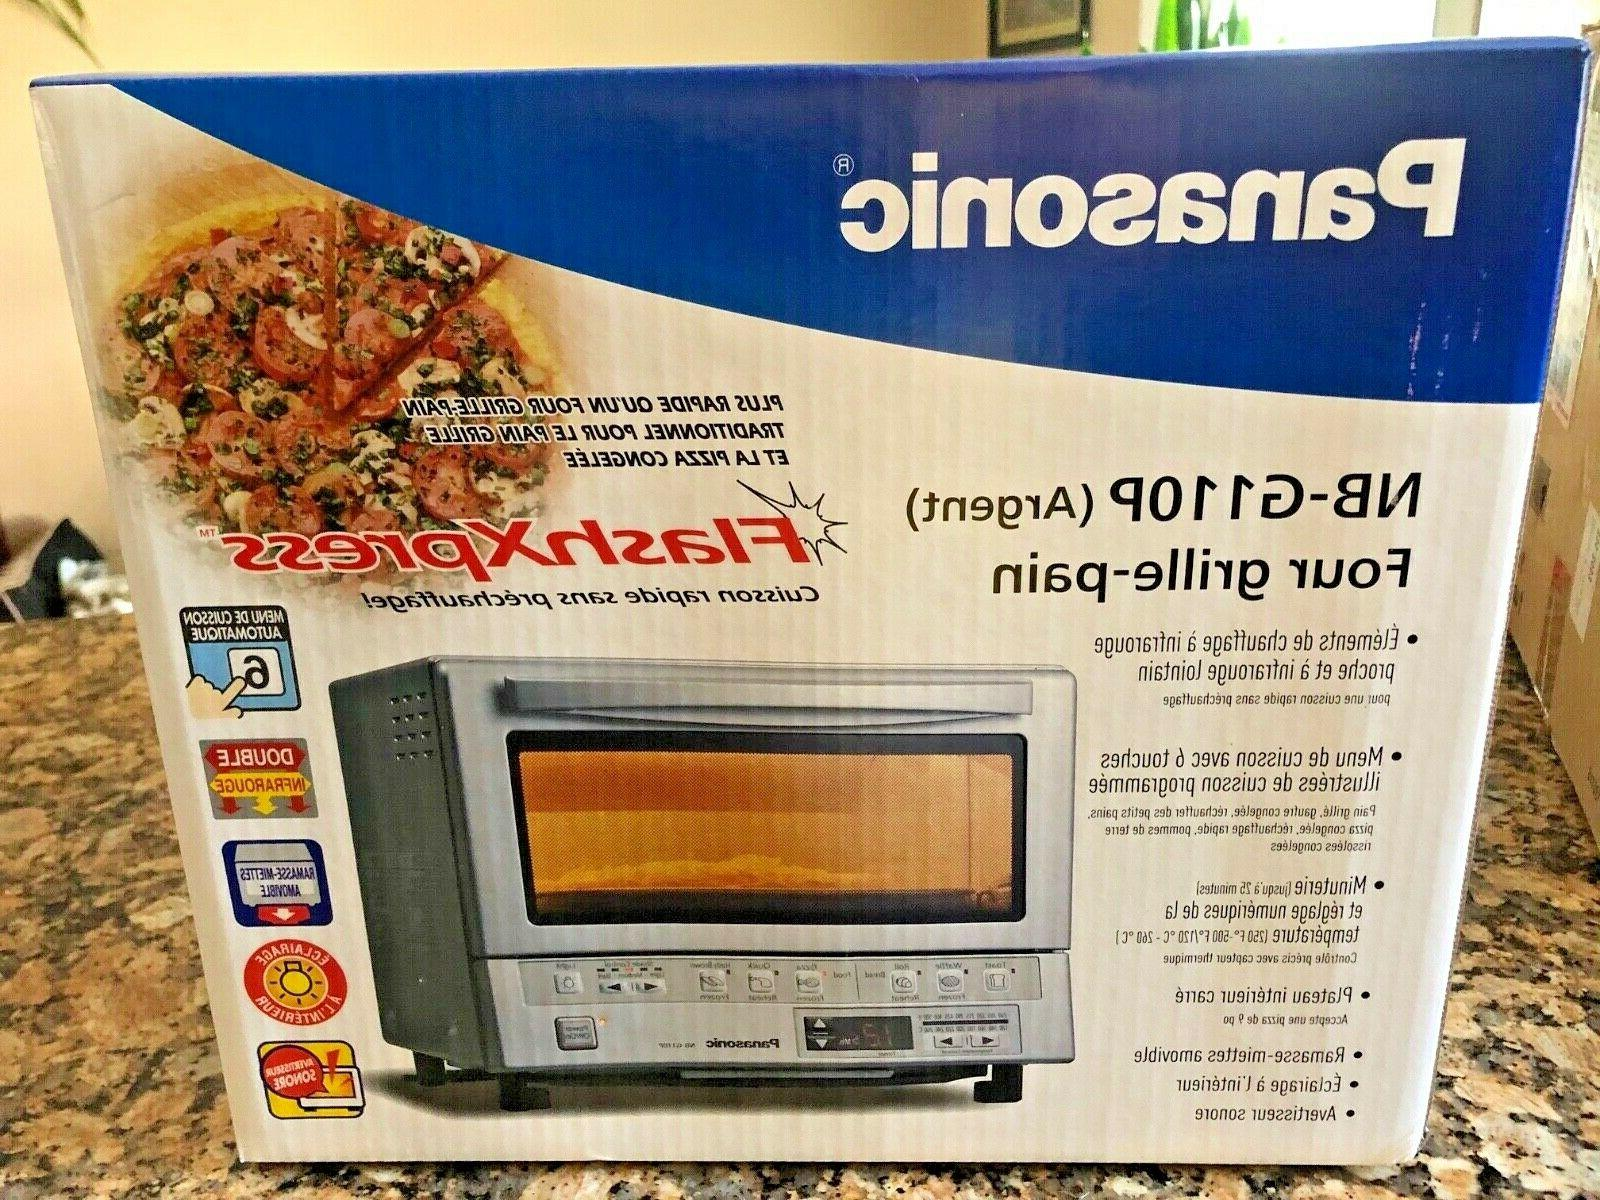 flashxpress compact toaster oven with double infrared